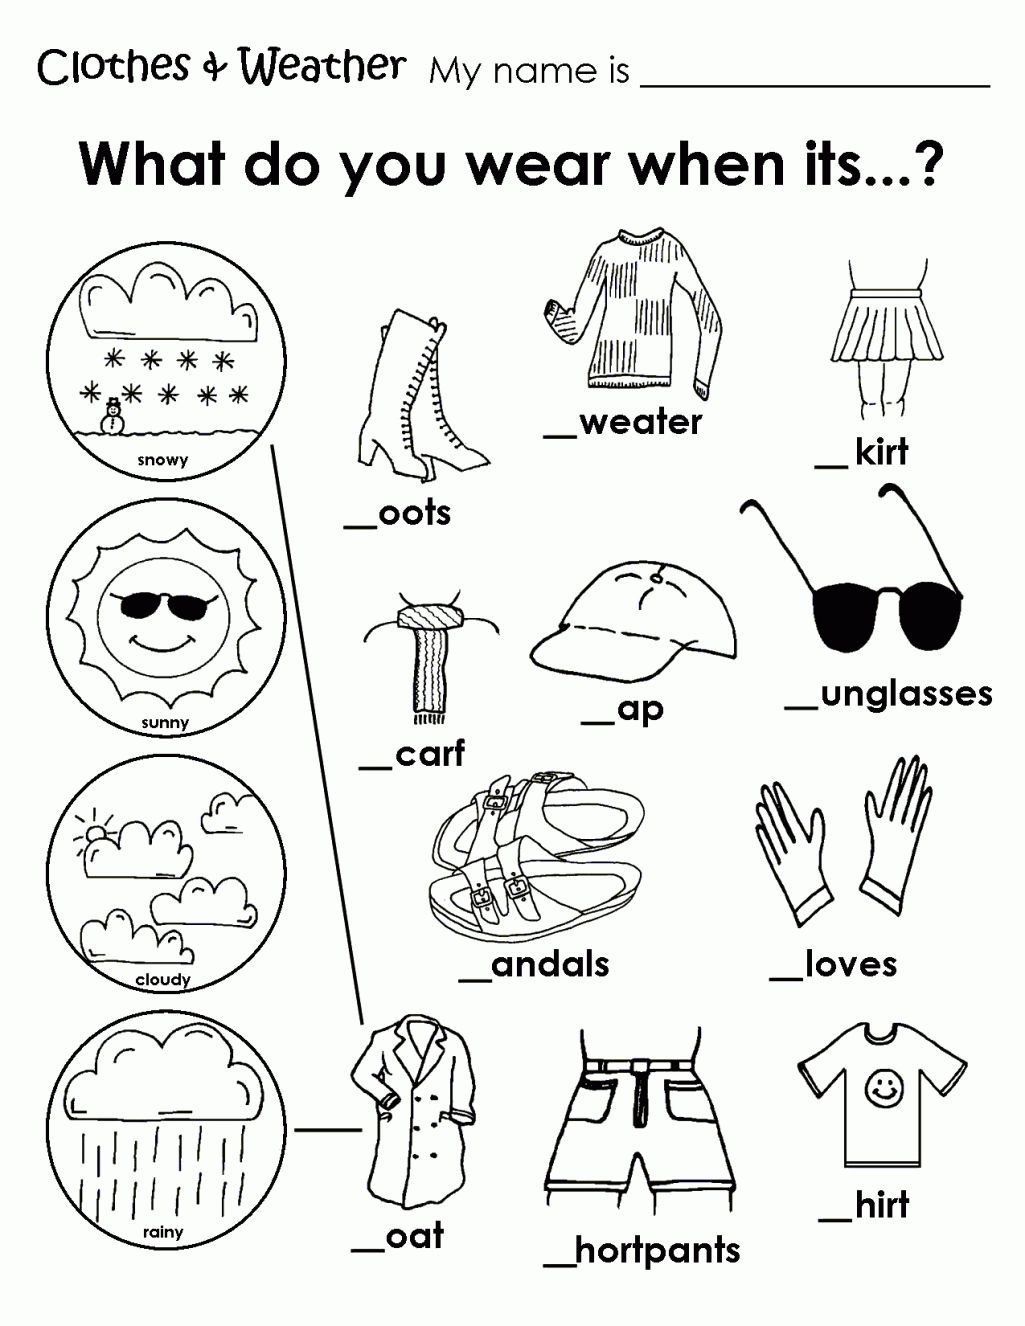 Free Coloring Pages Of Clothing Worksheet Weather Coloring Sheets ...